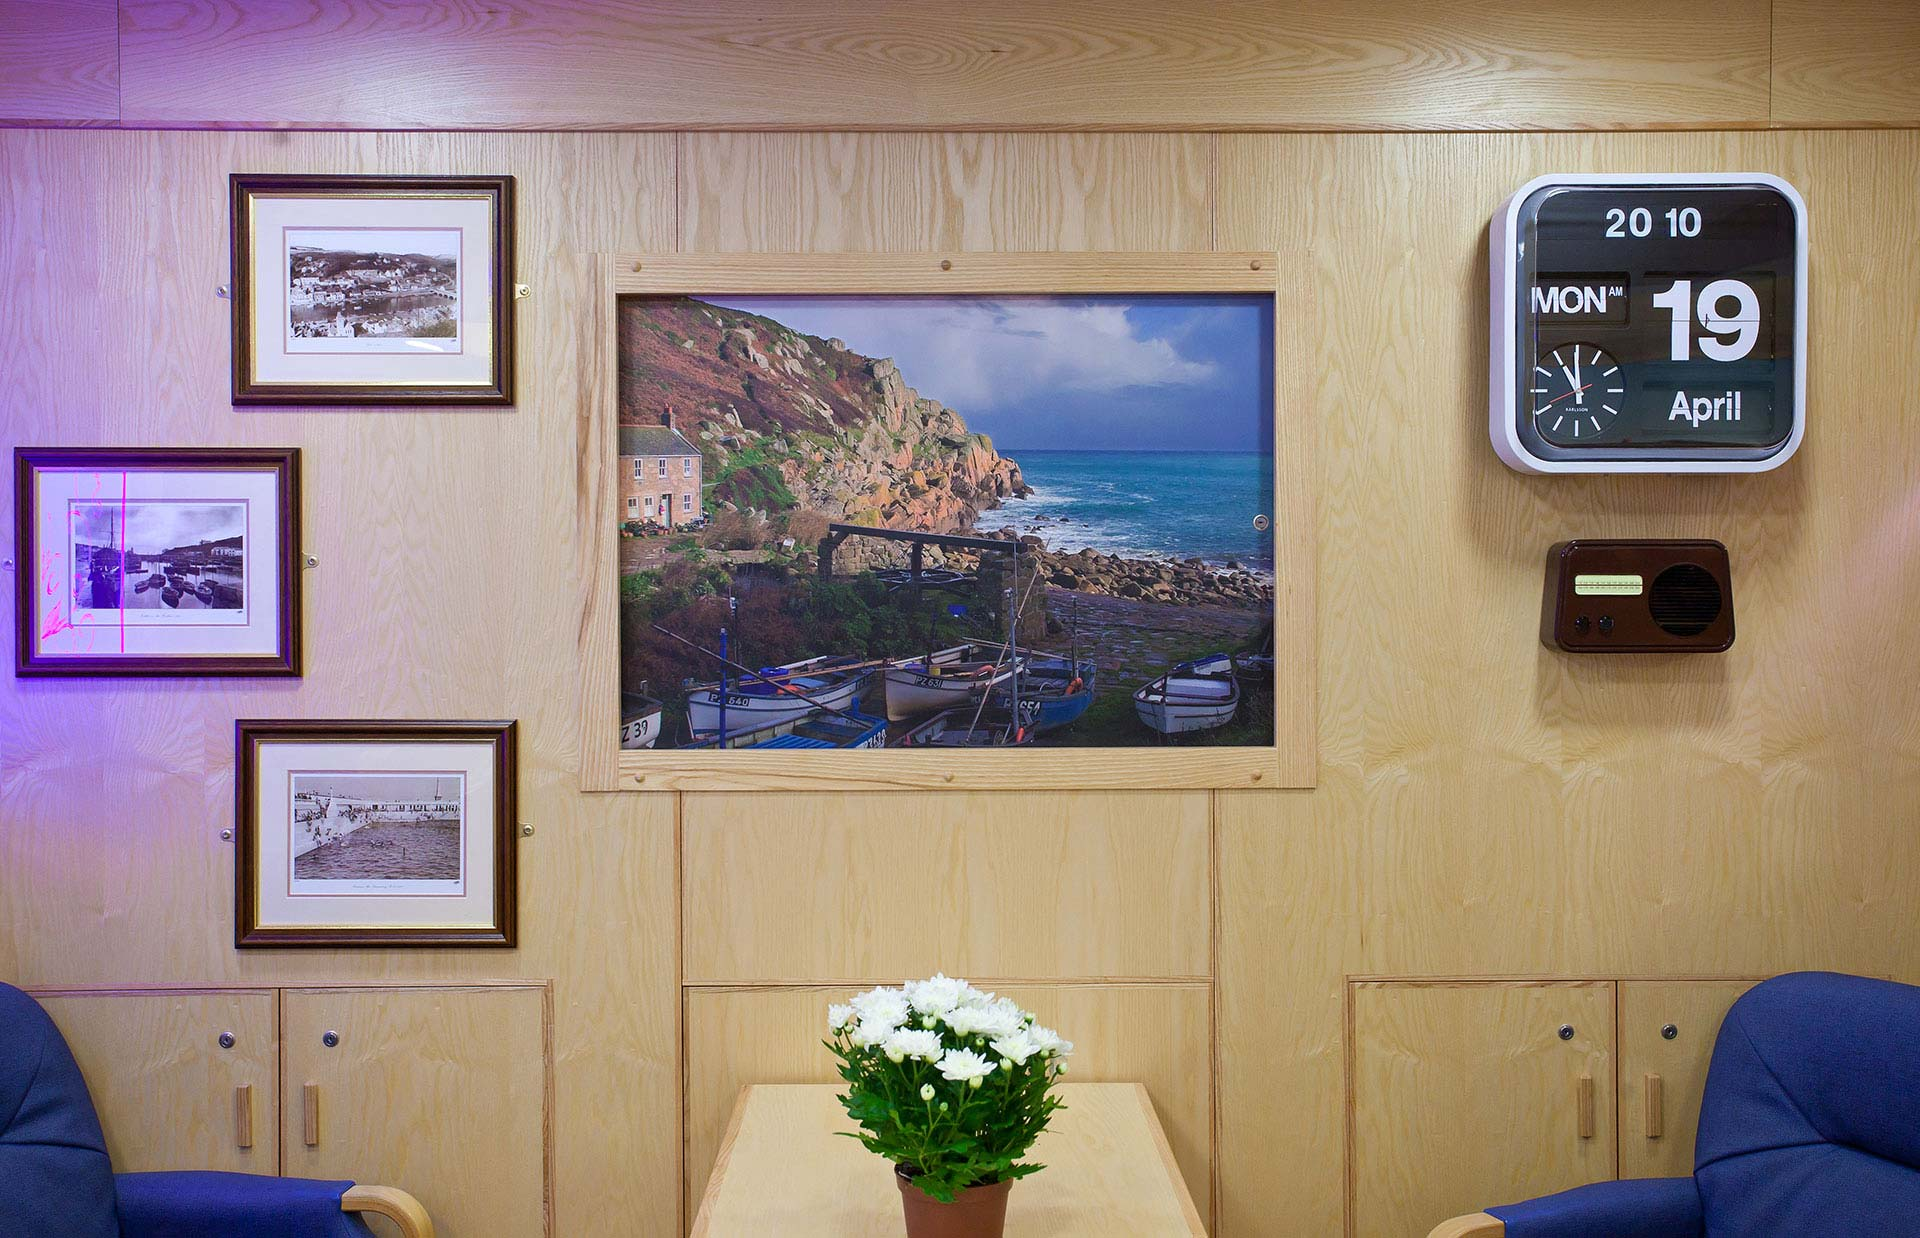 TV screen hidden behind sliding canvas to prevent it becoming a focal point for dementia patients